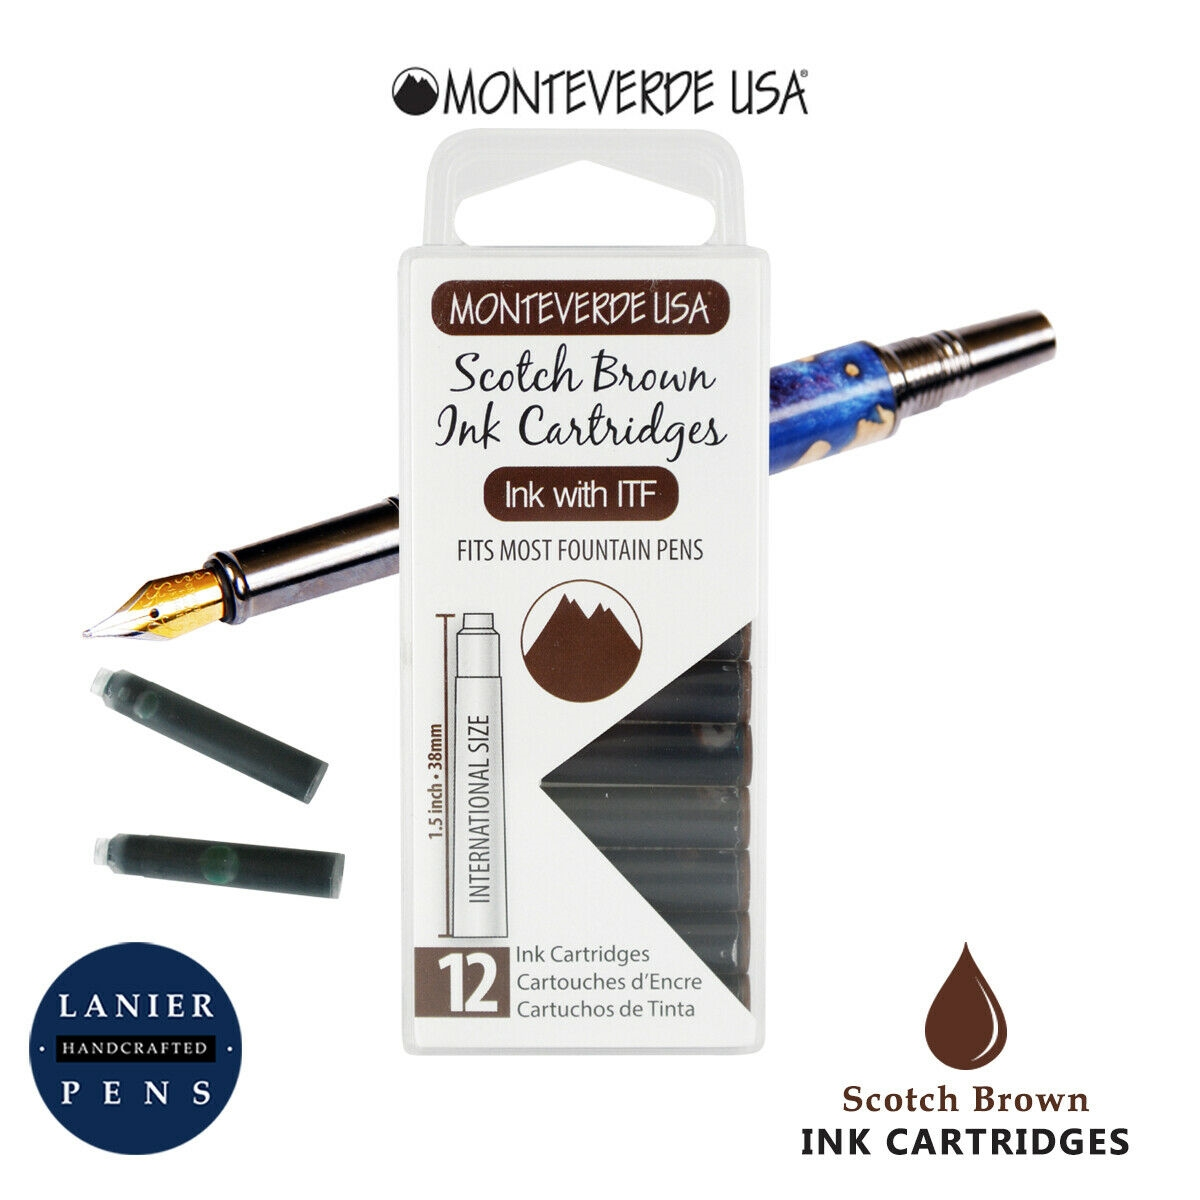 Monteverde G305SB Ink Cartridges Clear Case Gemstone Scotch Brown- Pack of 12